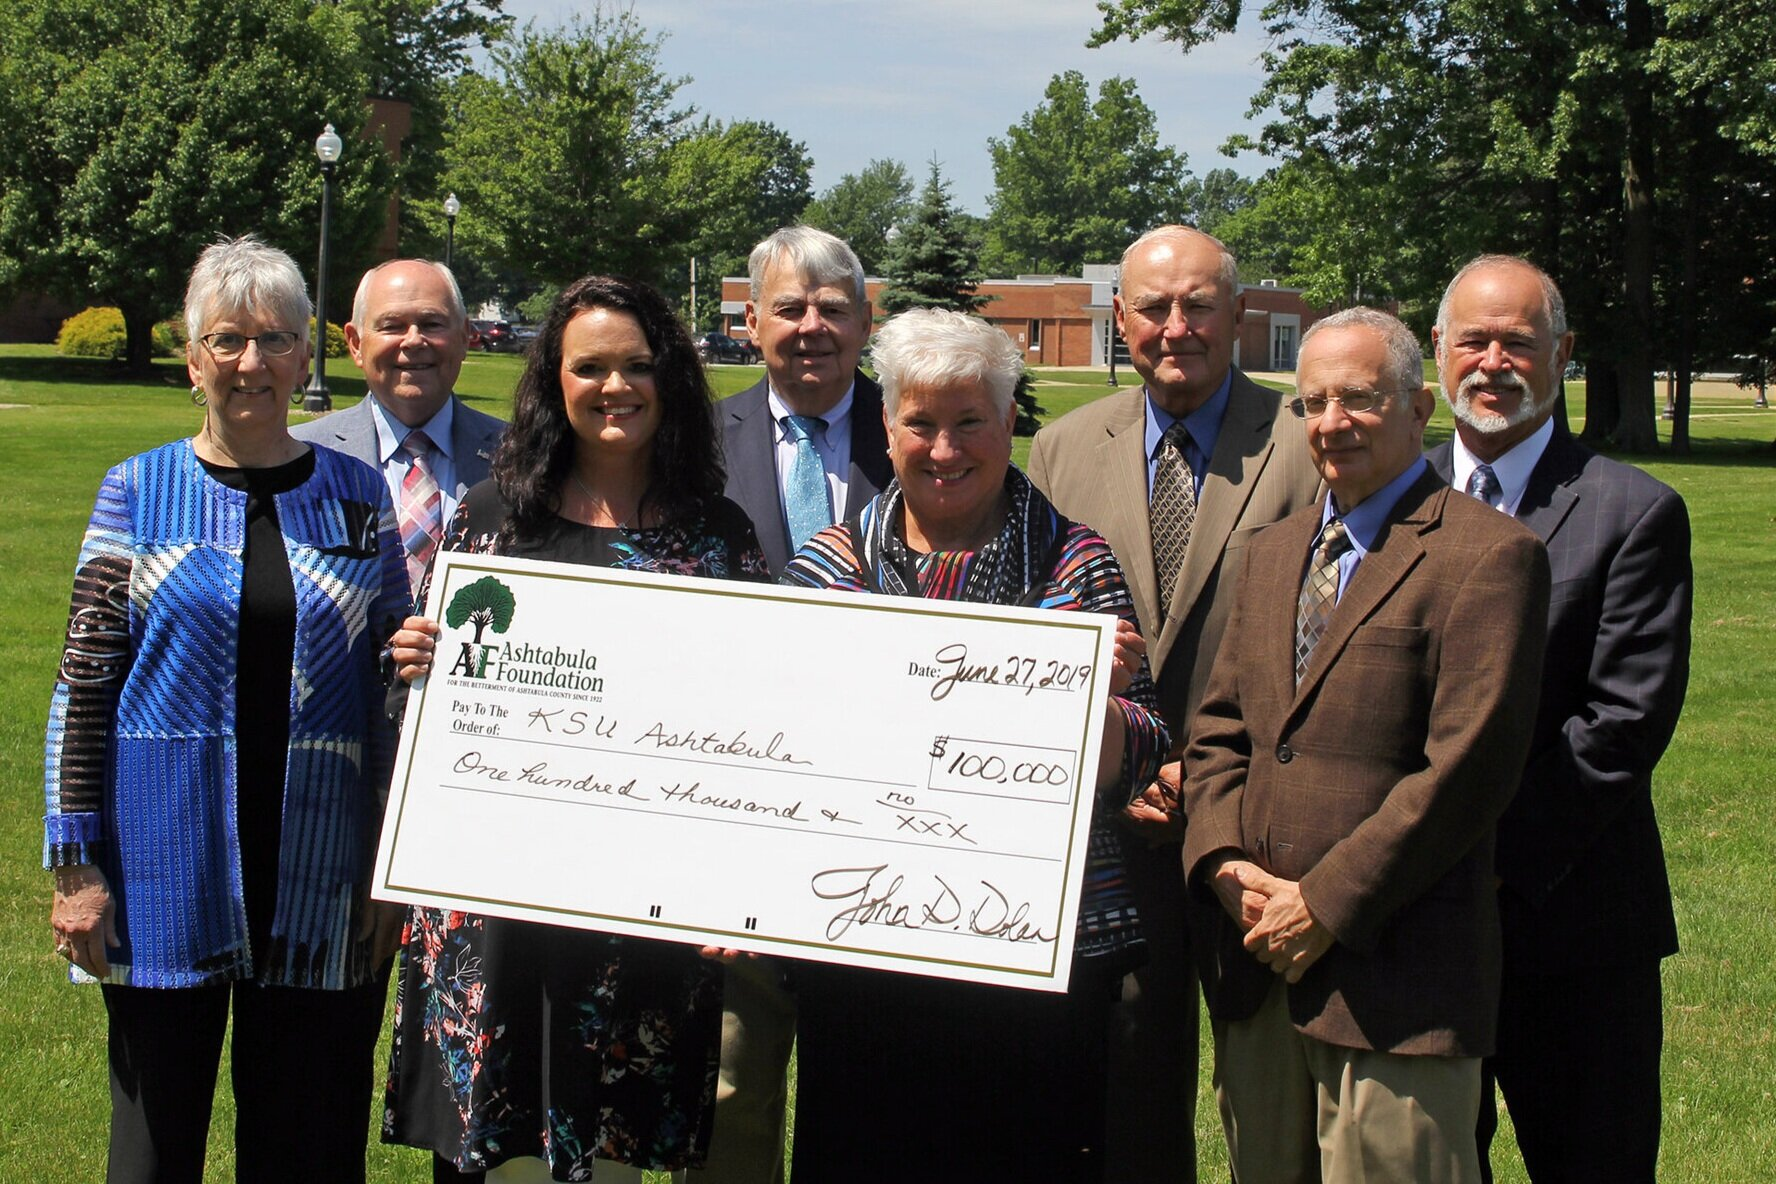 """PHOTO: Members of the Ashtabula Foundation present a ceremonial check in the amount of $100,000 to start an endowed fund in support of the Rising Scholars program at Kent State University at Ashtabula. Pictured are (left to right) Trustee and Past President Cheryle J. Chiaramonte, Trustee Roger A. Corlett, Associate Lecturer of Theater and Kent State Ashtabula Rising Scholars coordinator Natalie Huya, Board Secretary/Treasurer William W. """"Bud"""" Hill, Kent State Ashtabula Dean and Chief Administrative Officer Dr. Susan J. Stocker, Board President John D. Dolan, Trustee G. Richard Coblitz, and Trustee Dr. Jerome A. Brockway. ###"""